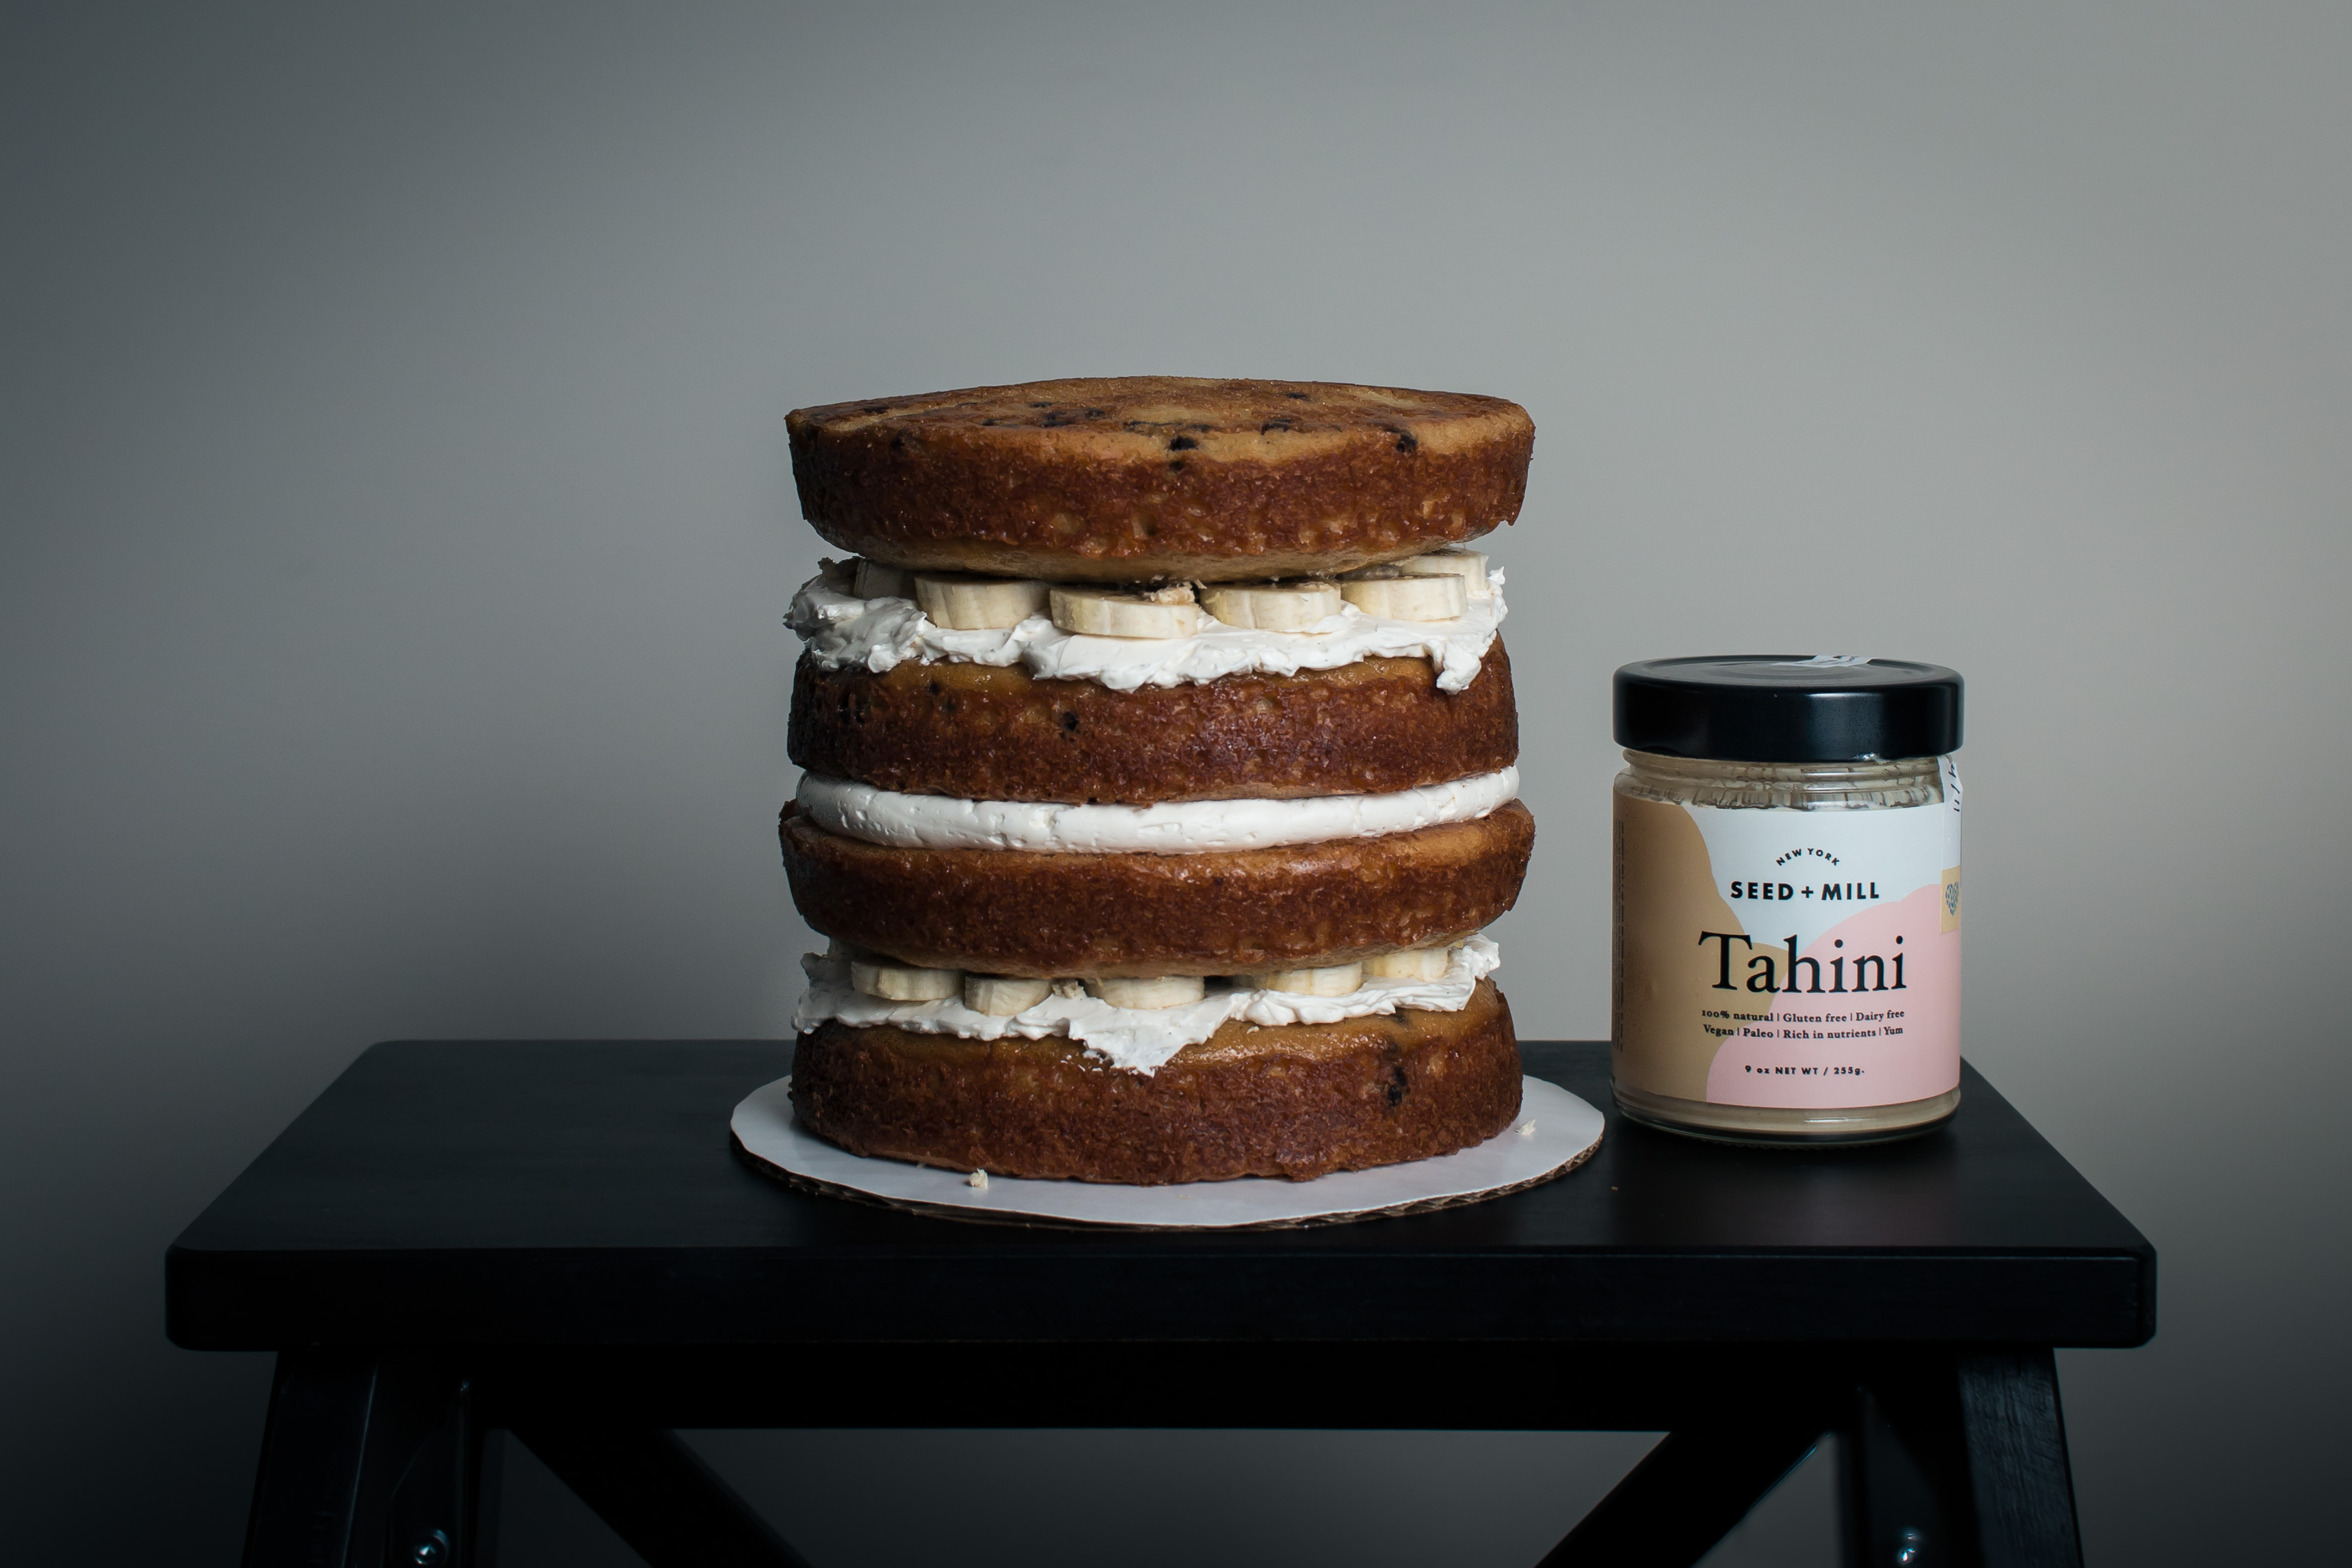 Chocolate Chip Tahini Cake with Bananas and Halva | Recipe from I Will Not Eat Oysters